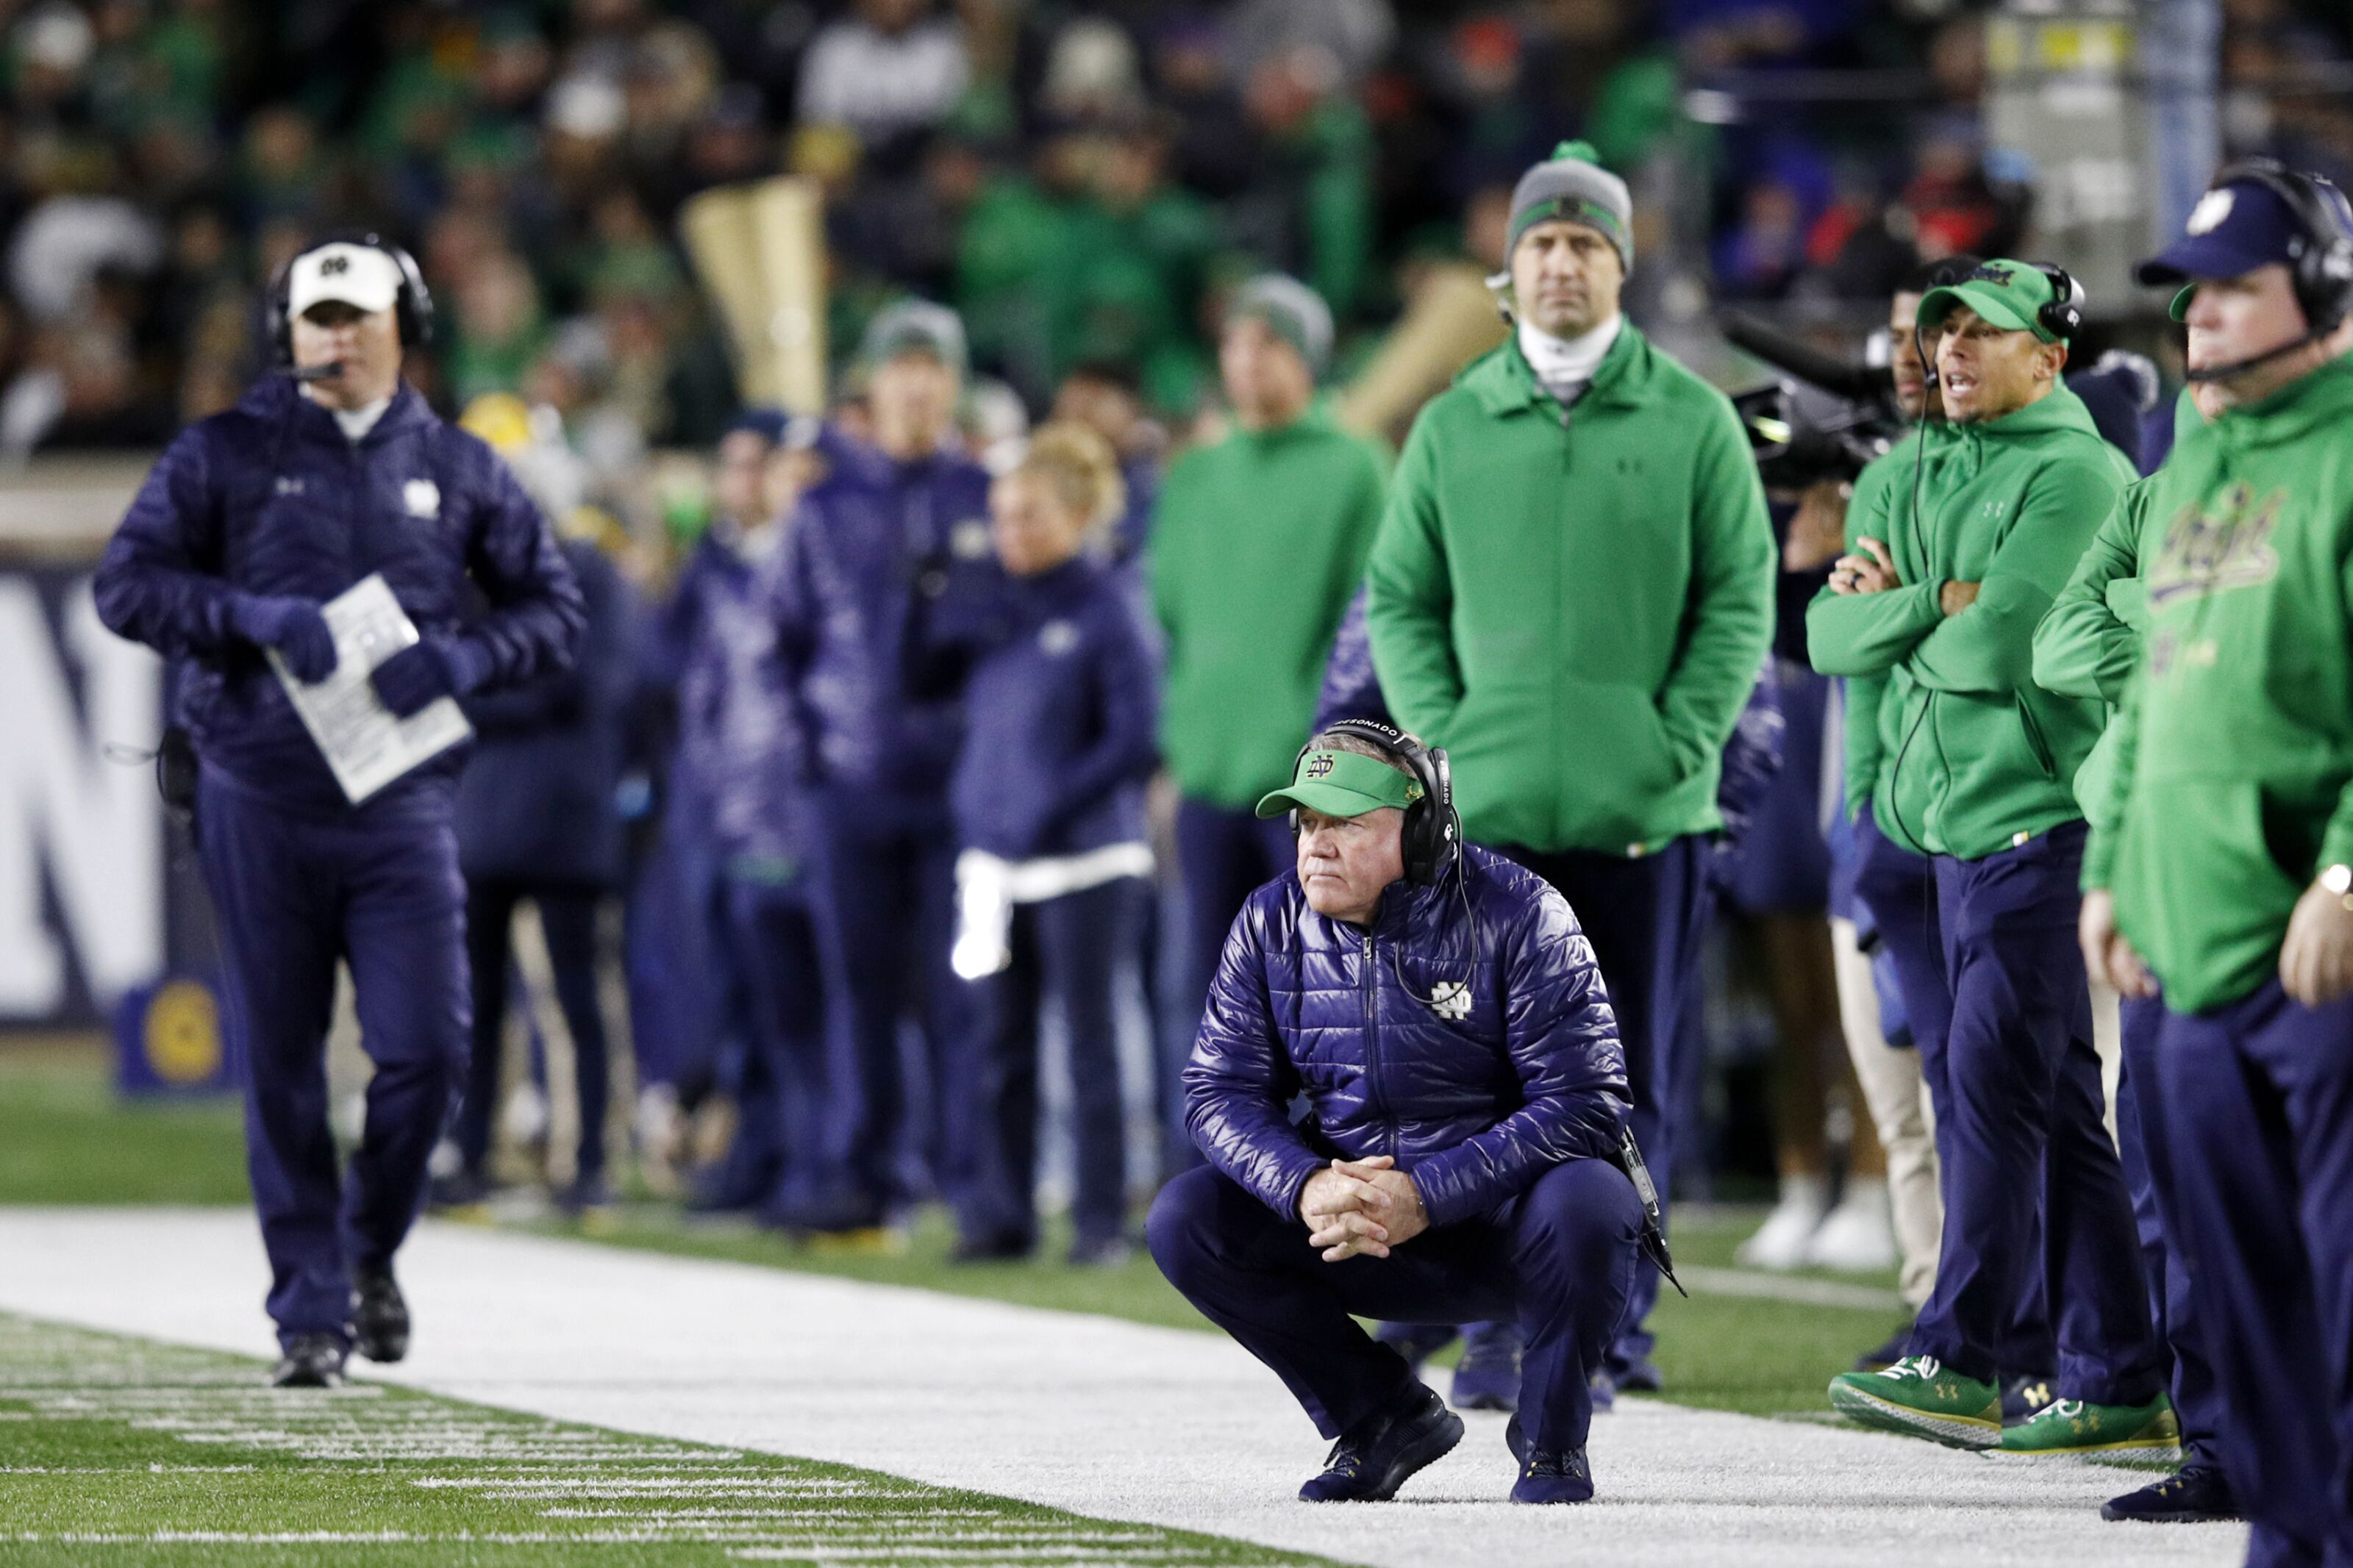 Notre Dame Football: The Irish could use a little chaos